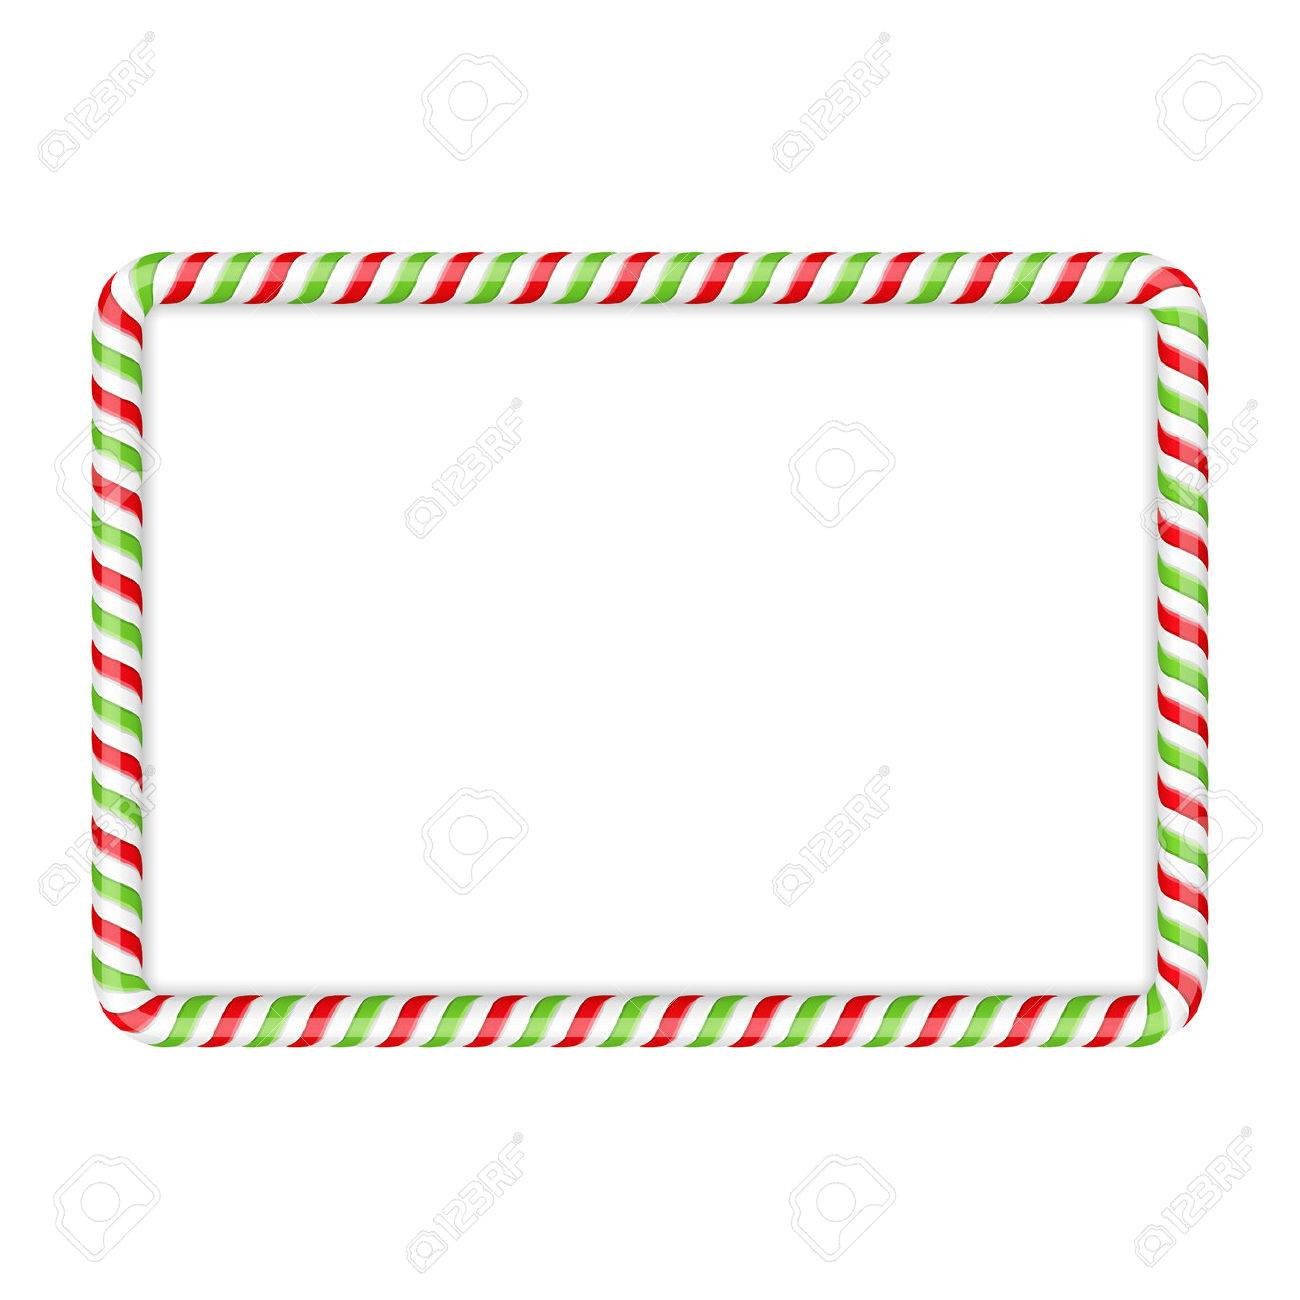 Frame made of candy cane, red and green colors.